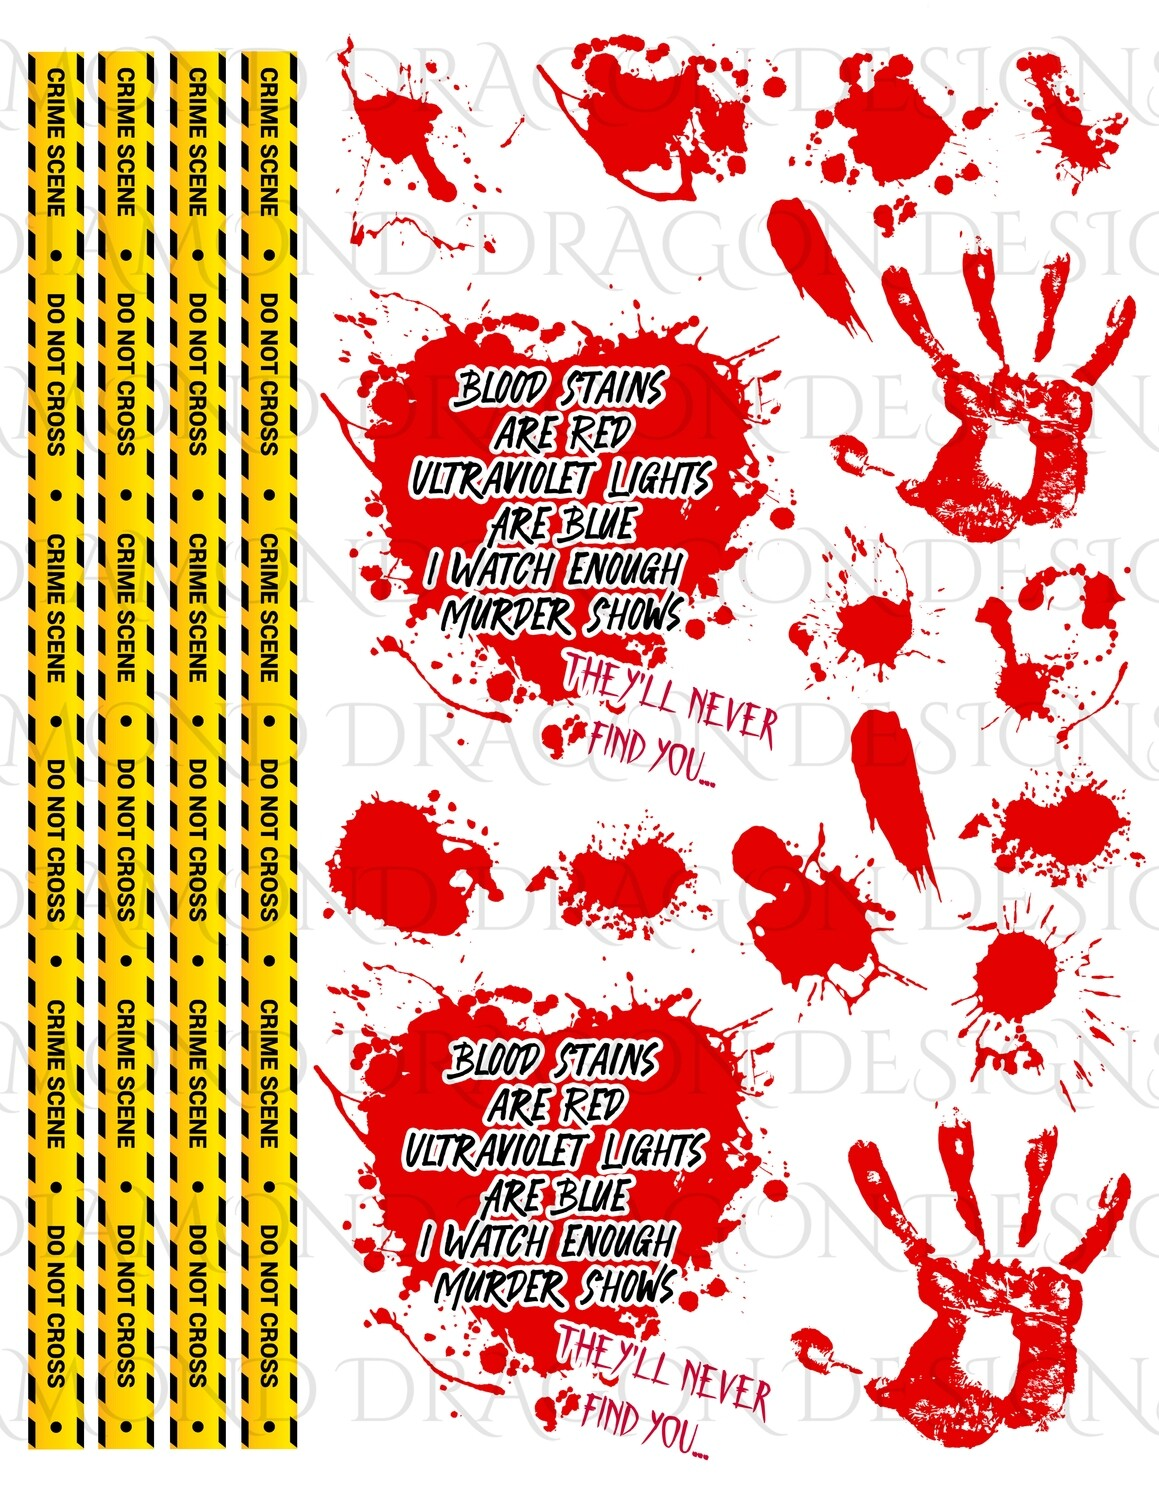 Full Page - Crime Tape, Blood Stains Are Red, Blood Splatter Heart, Poem, 2 Waterslide